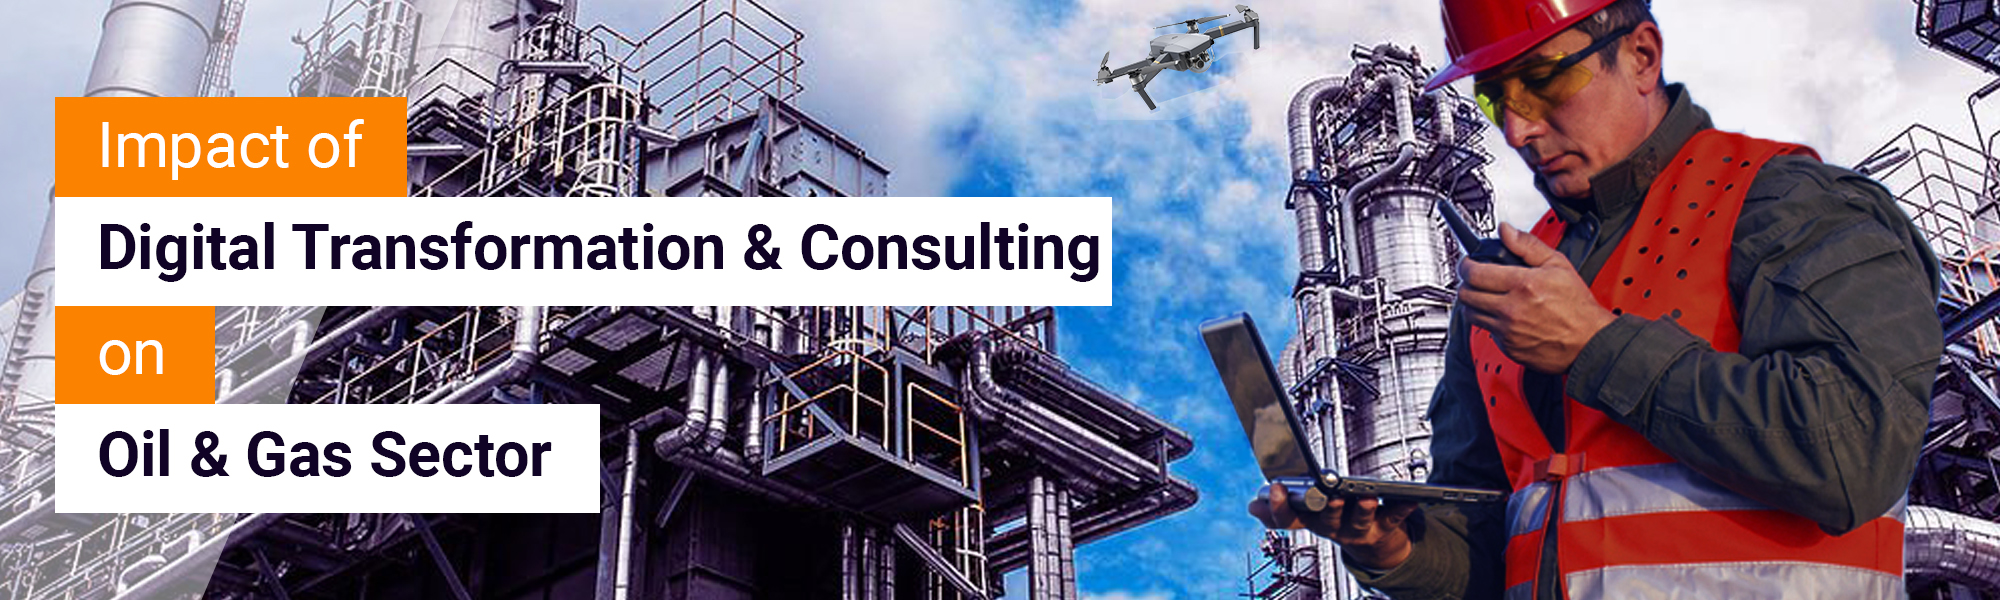 Impact of Digital Transformation & Consulting on Oil & Gas Sector